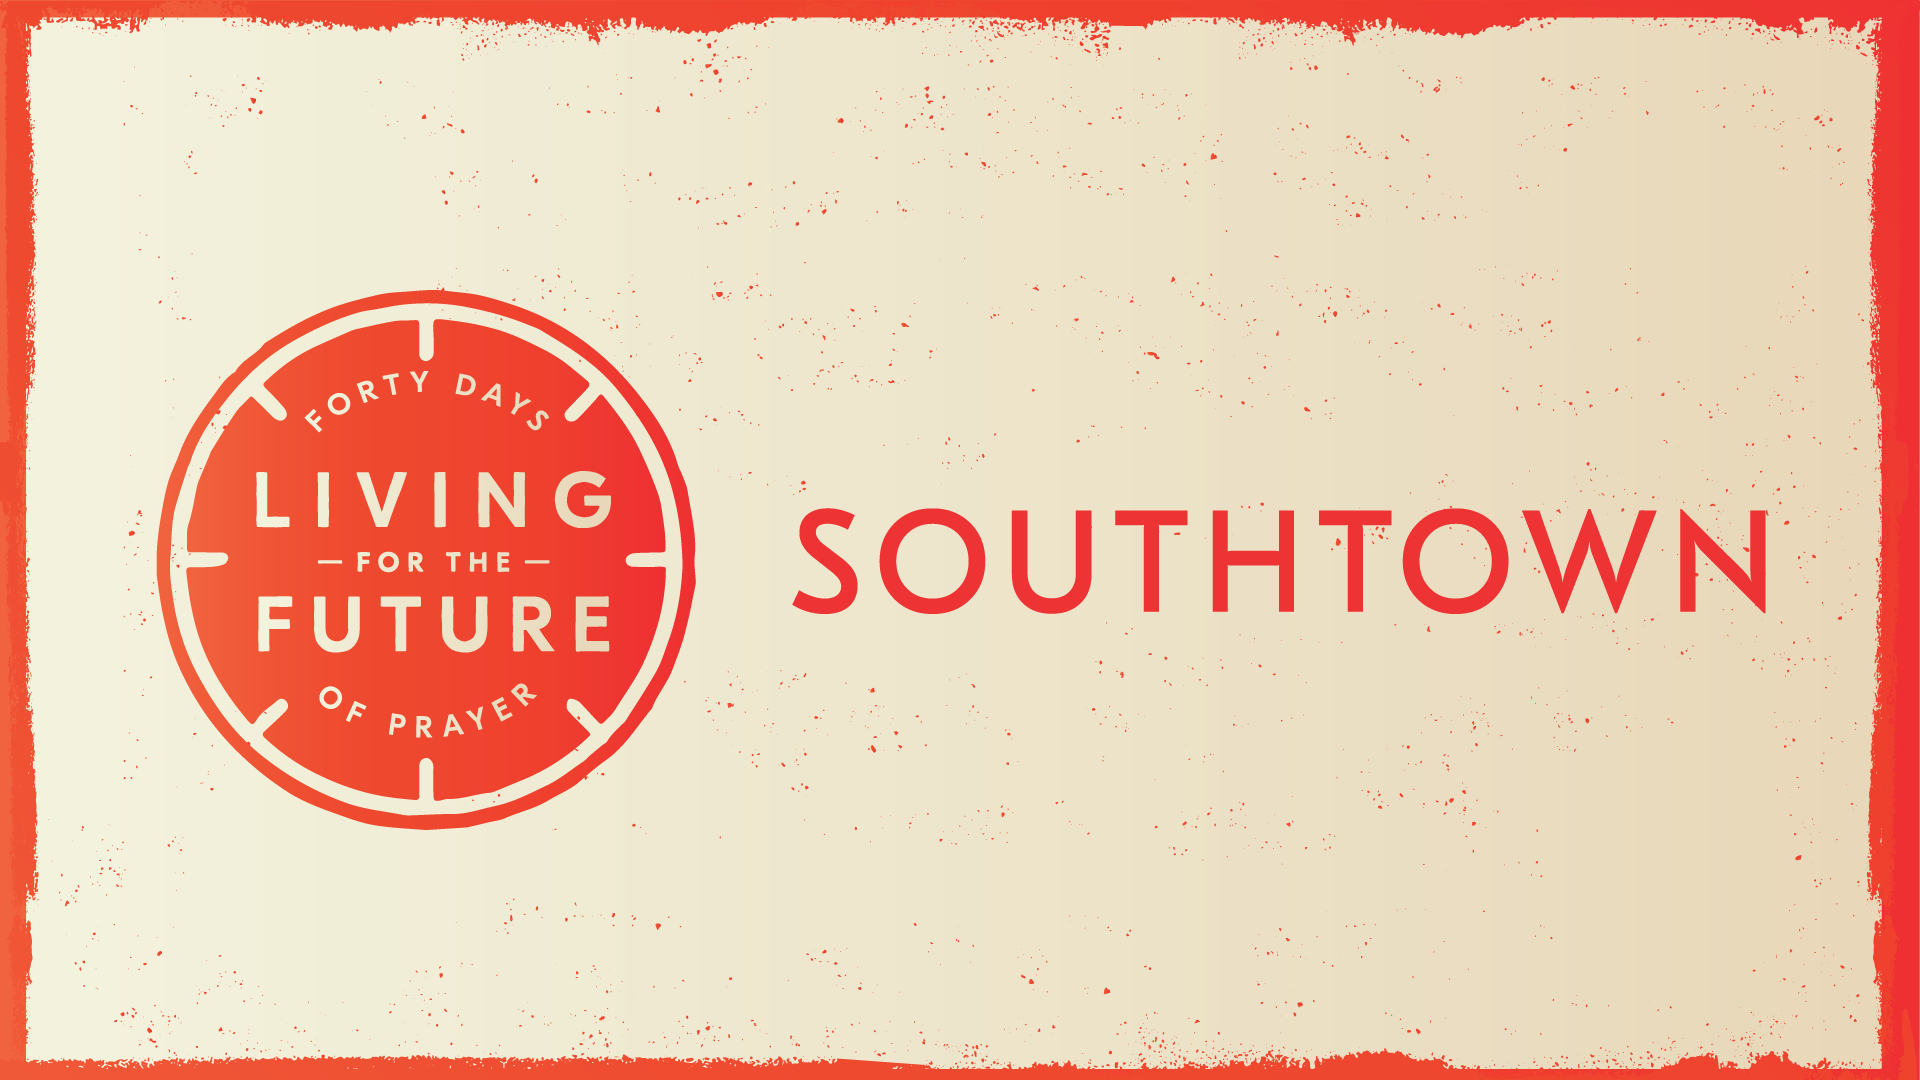 40 Days Of Prayer: Southtown    December 10th, 2018